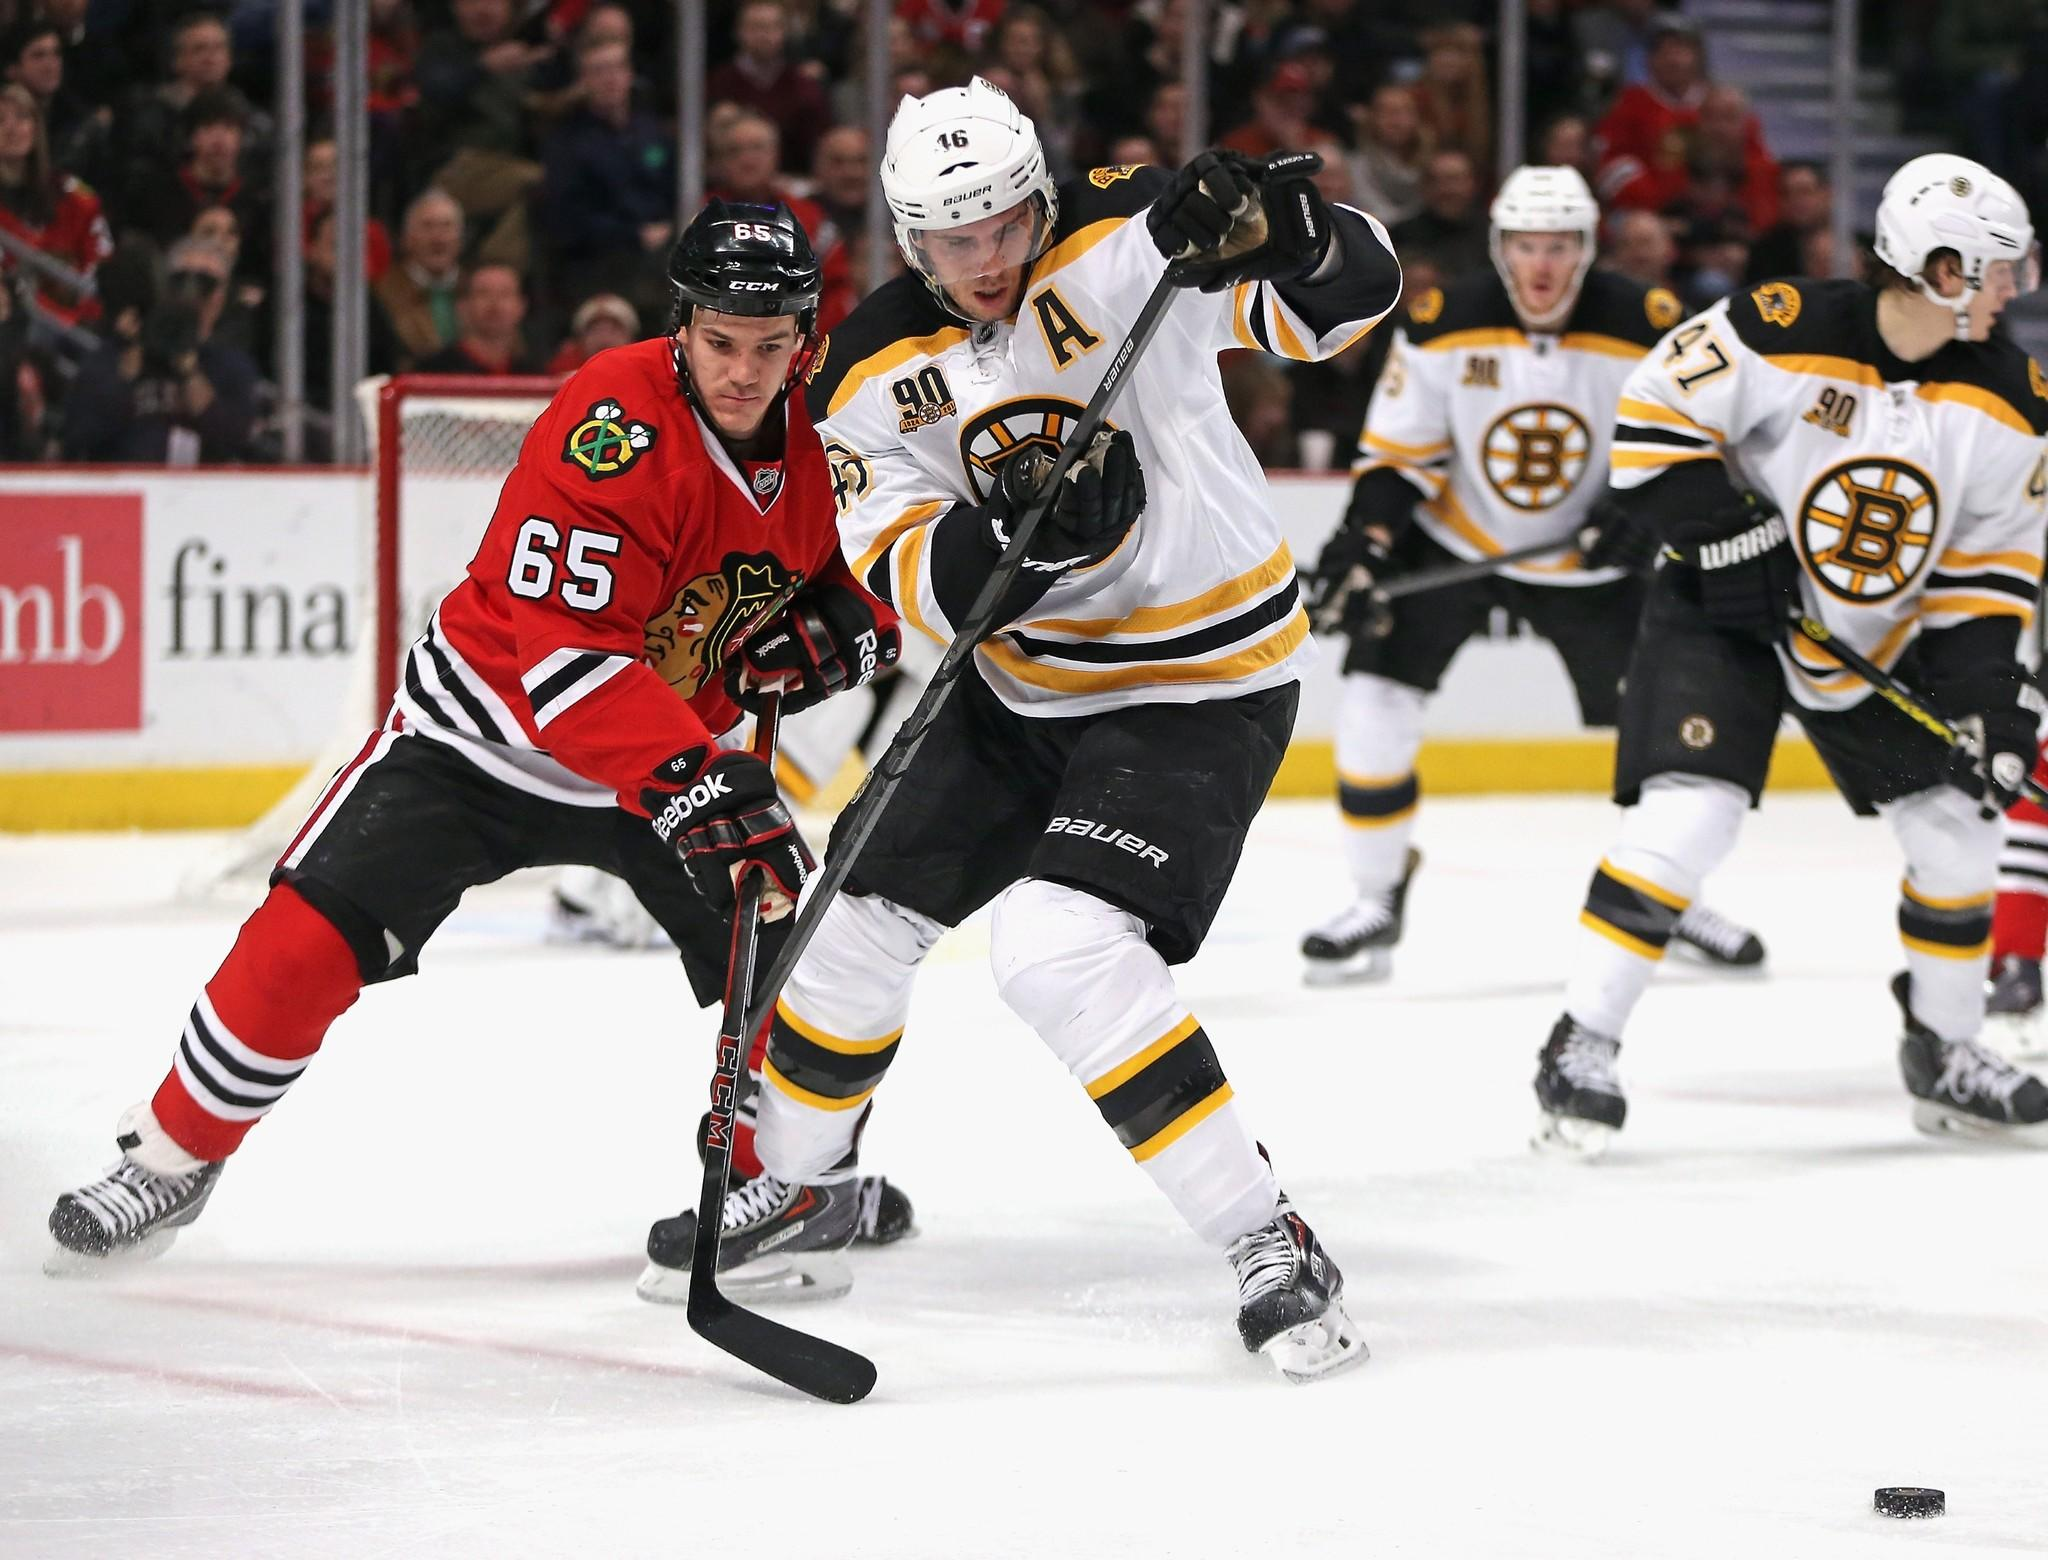 Andrew Shaw #65 of the Chicago Blackhawks and David Krejci #46 of the Boston Bruins moves to the puck at the United Center on January 19, 2014 in Chicago, Illinois.